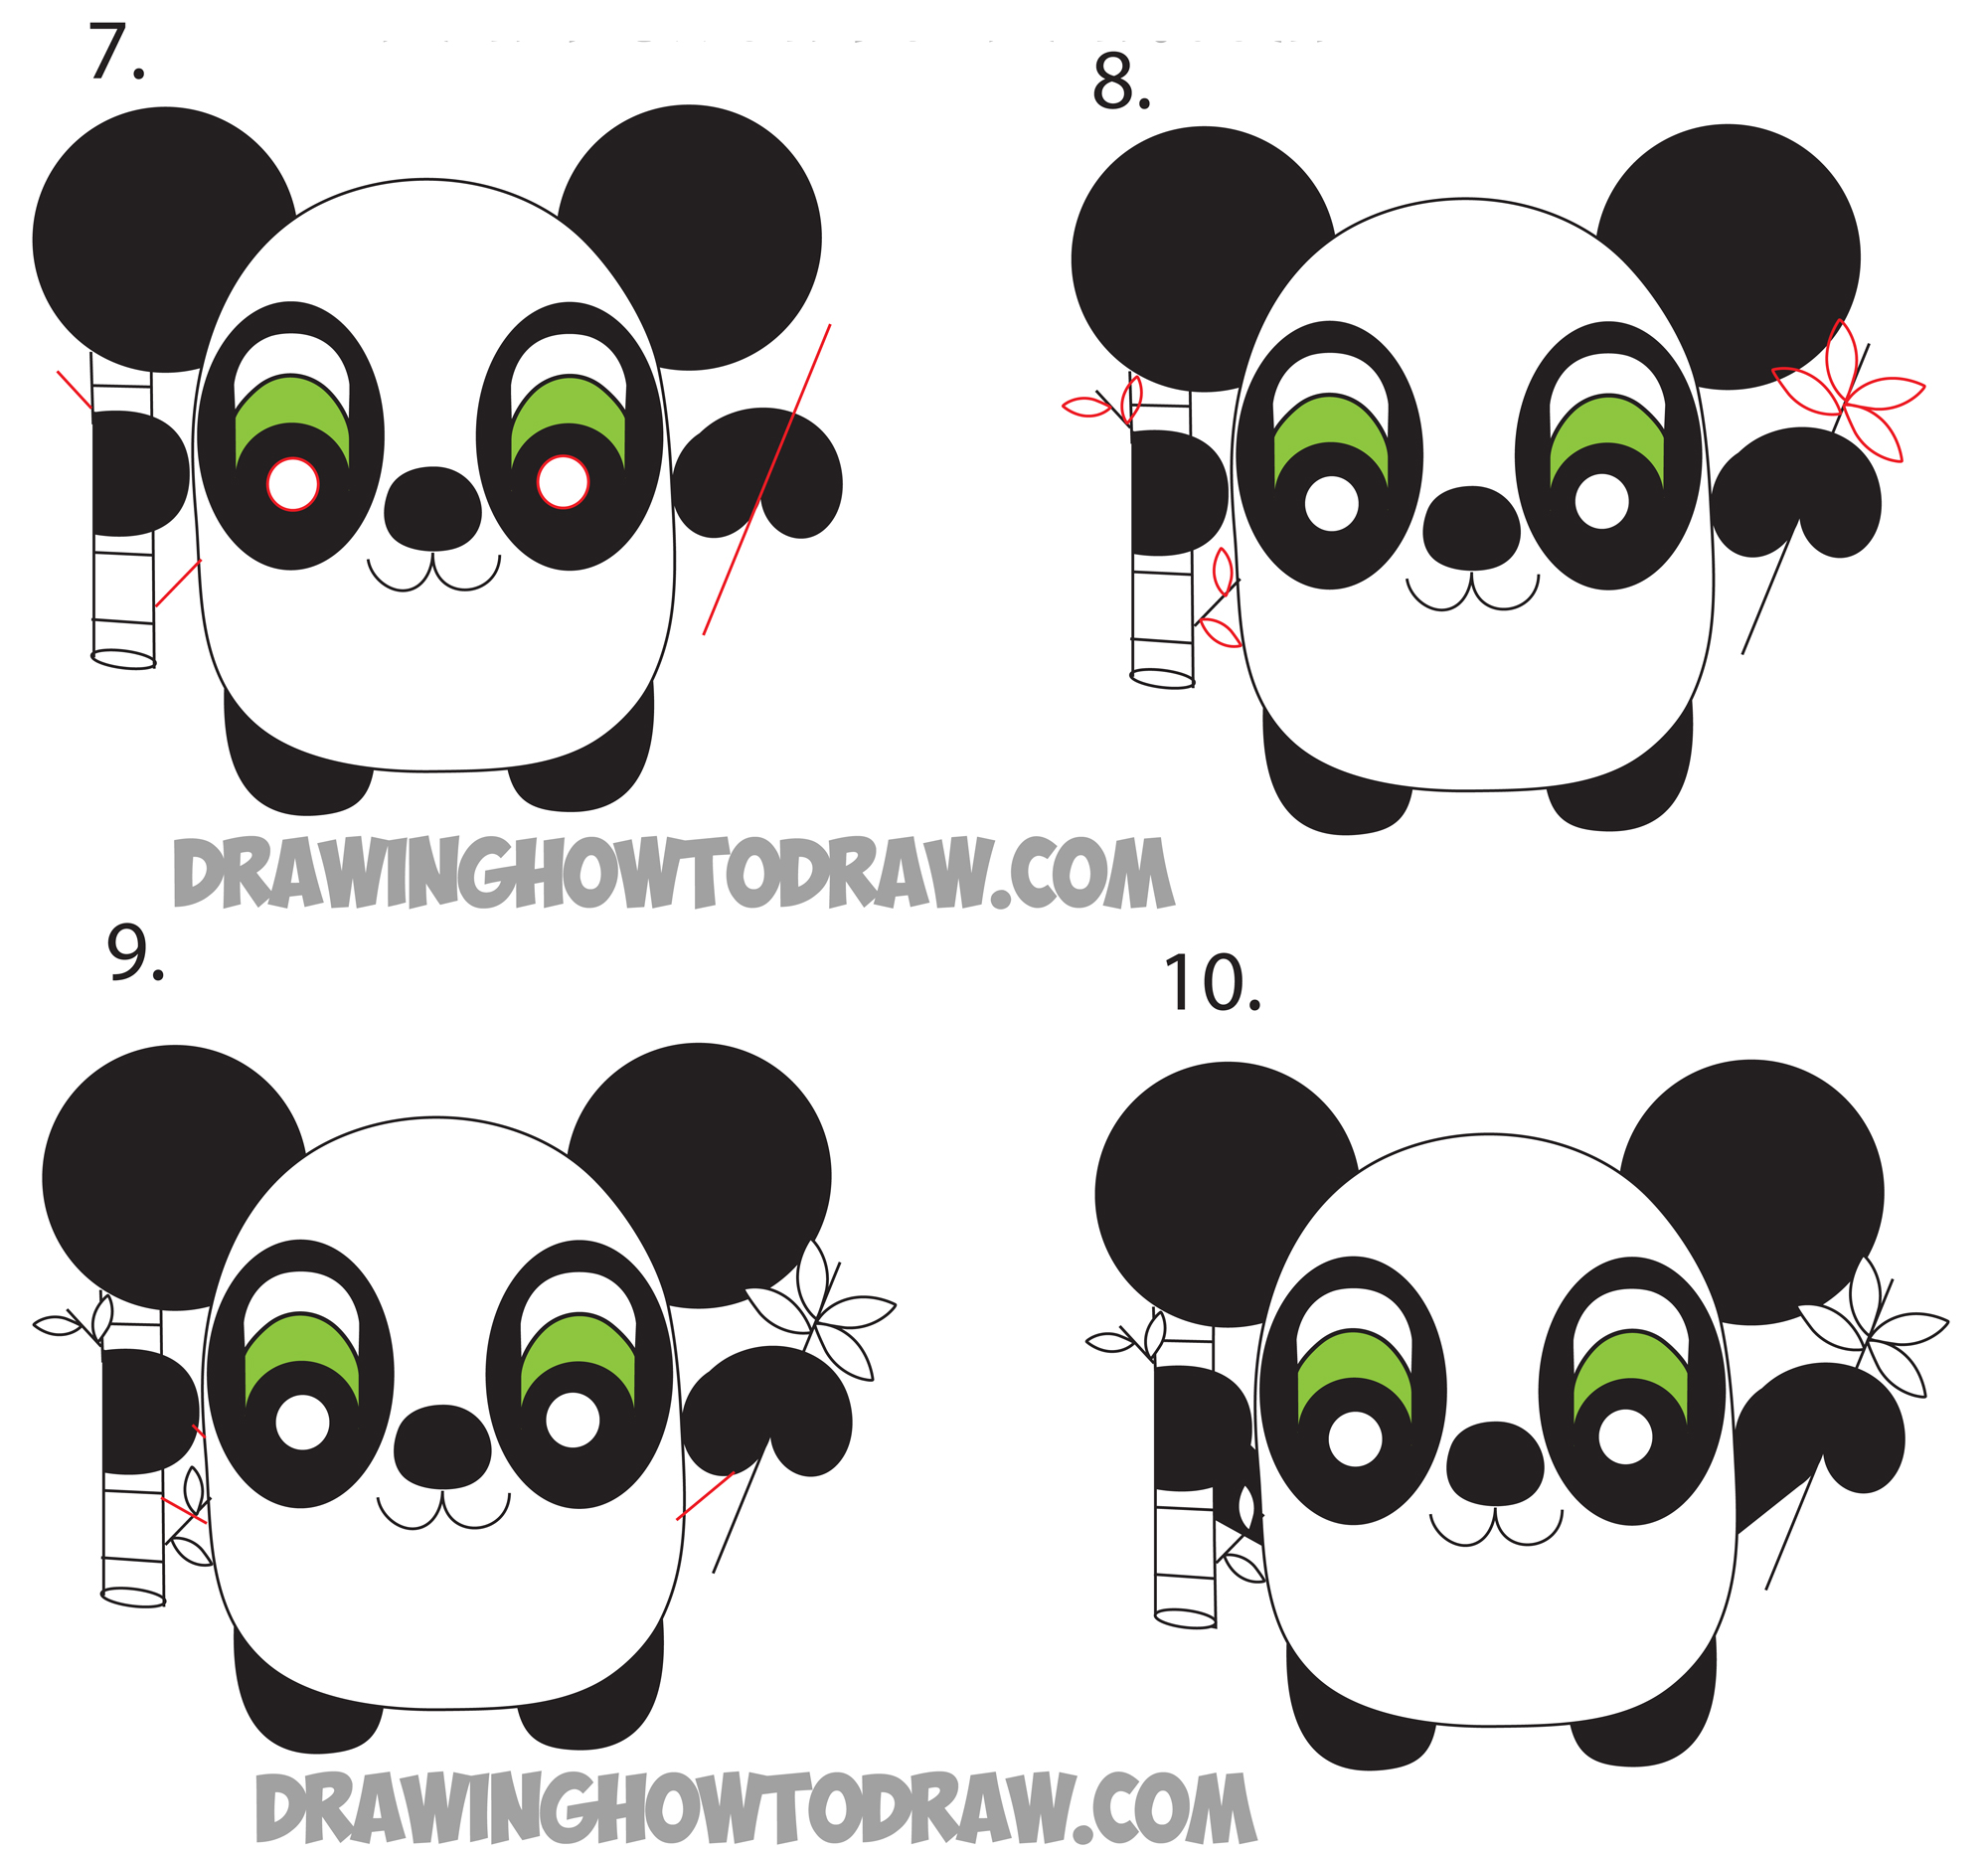 How To Draw Cartoon Pandas From The Word Panda Step By Step Tutorial